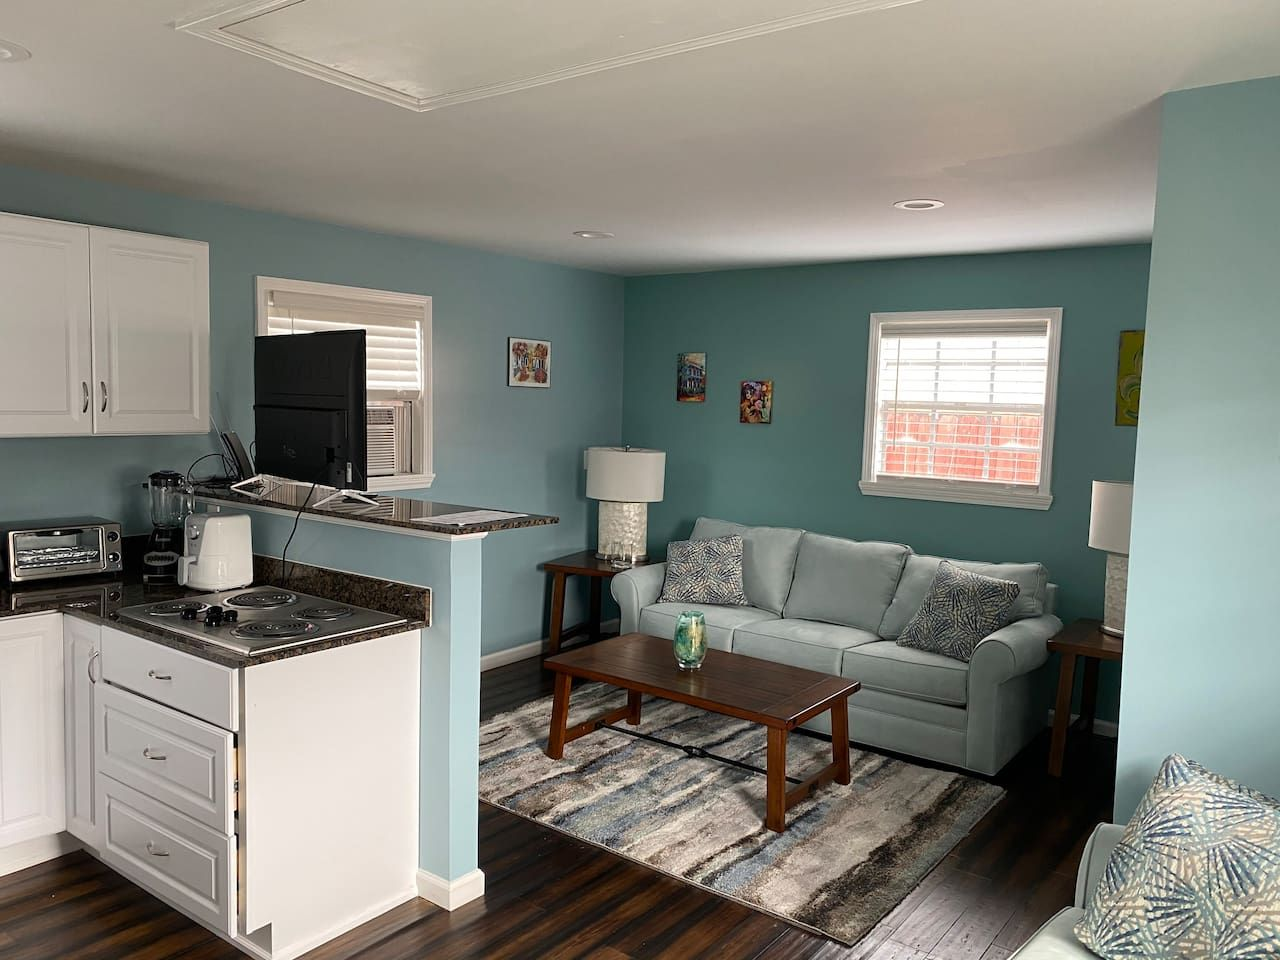 Airport Mother In Law Suite Guesthouses For Rent In Kenner Louisiana United States Mother In Law Apartment In Law Suite Inlaw Suite